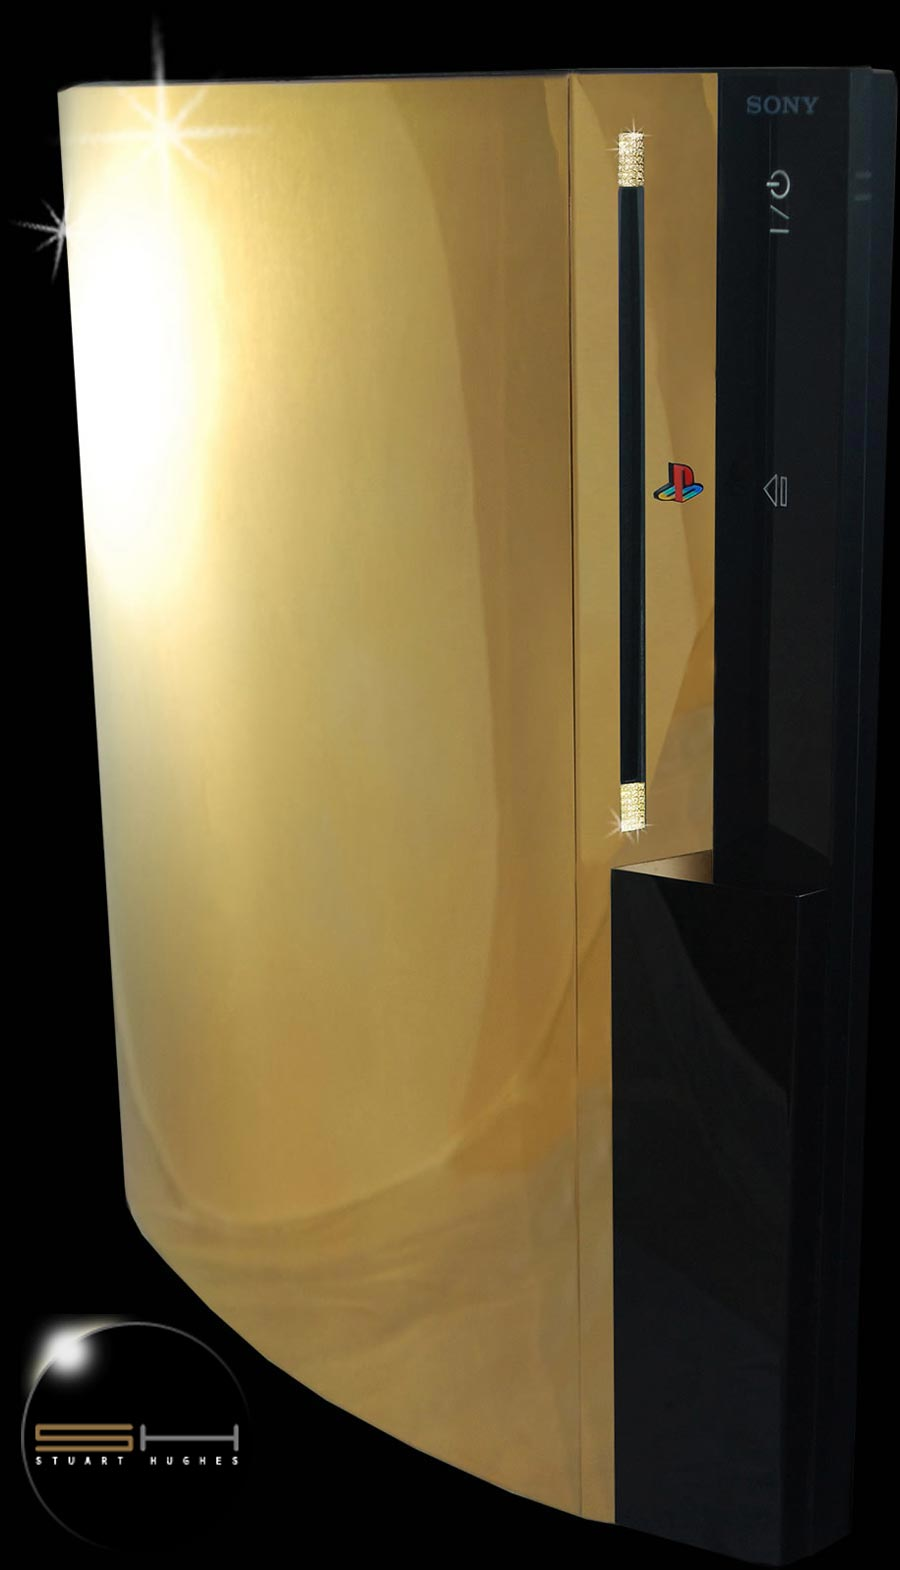 PS3-Supreme-Gold-Diamond